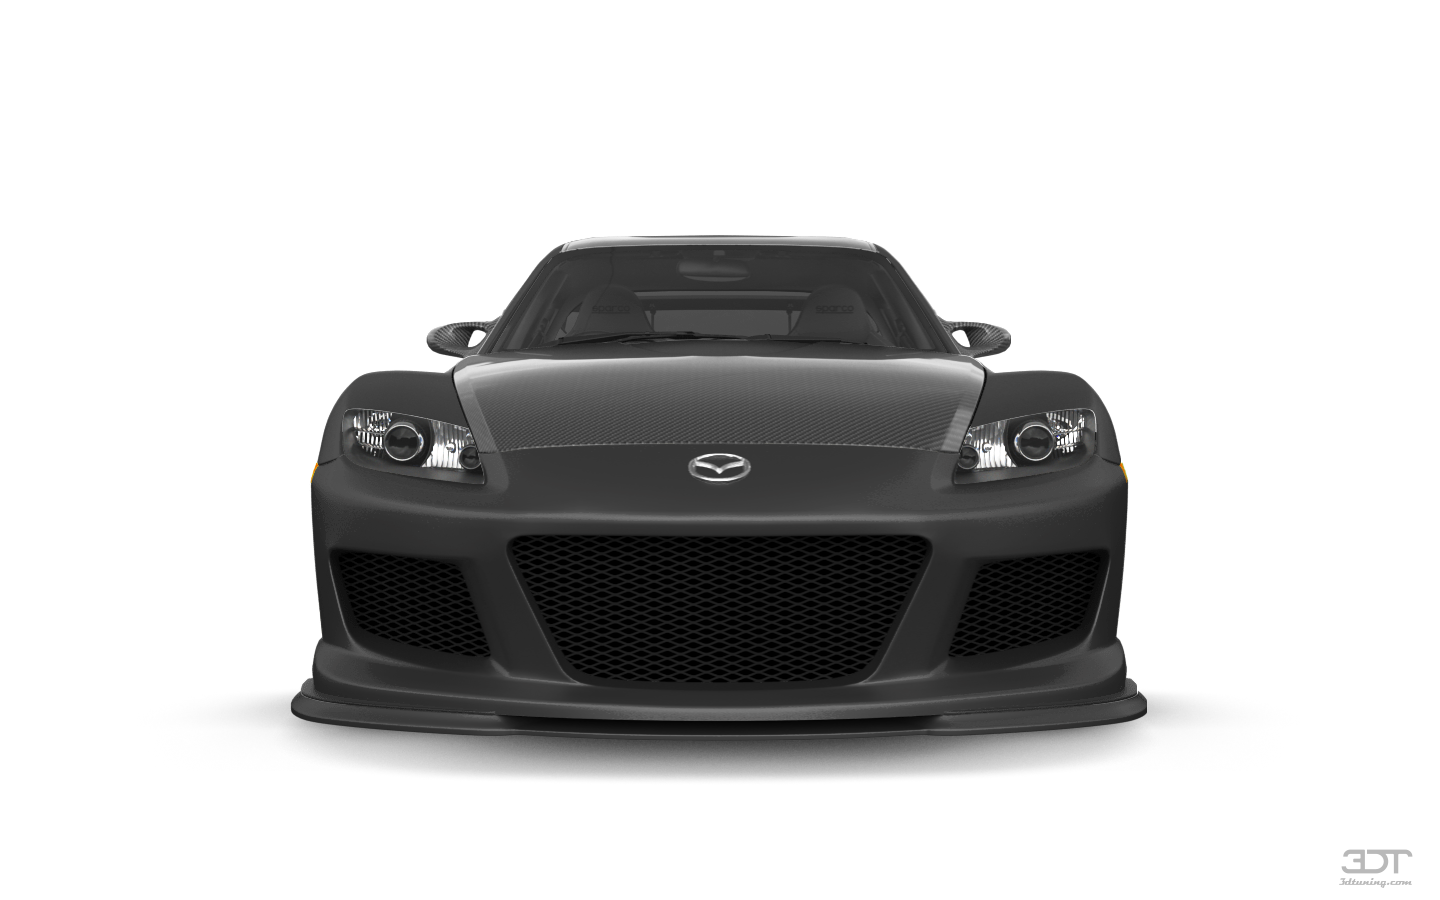 Mazda RX-8 Quad Coupe 2004